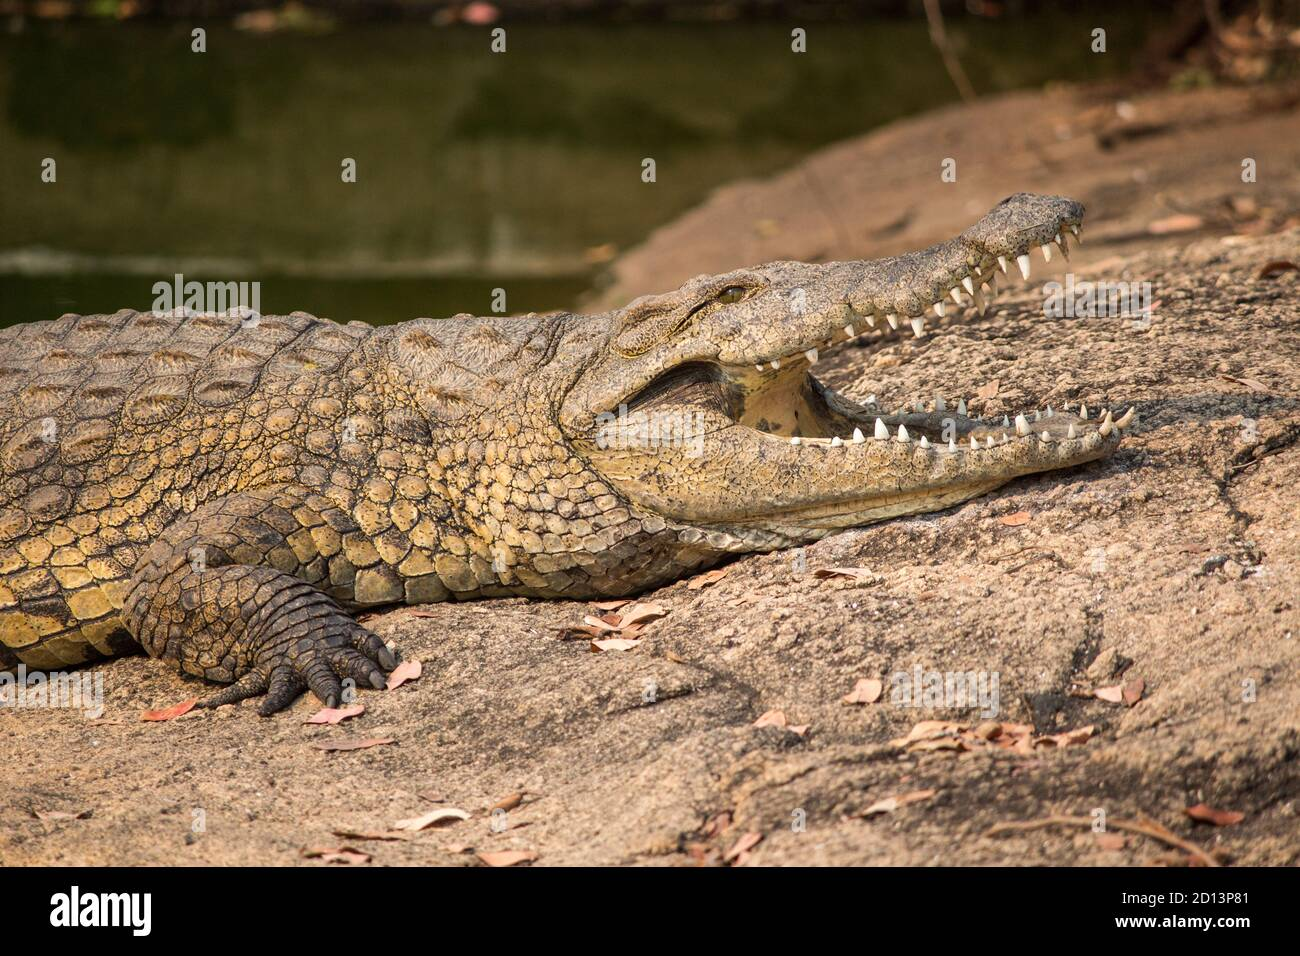 Nile crocodile (Crocodylus niloticus) basking with open mouth in the bank of Messica river stream in Manica, Mozambique near Zimbabwe border Stock Photo